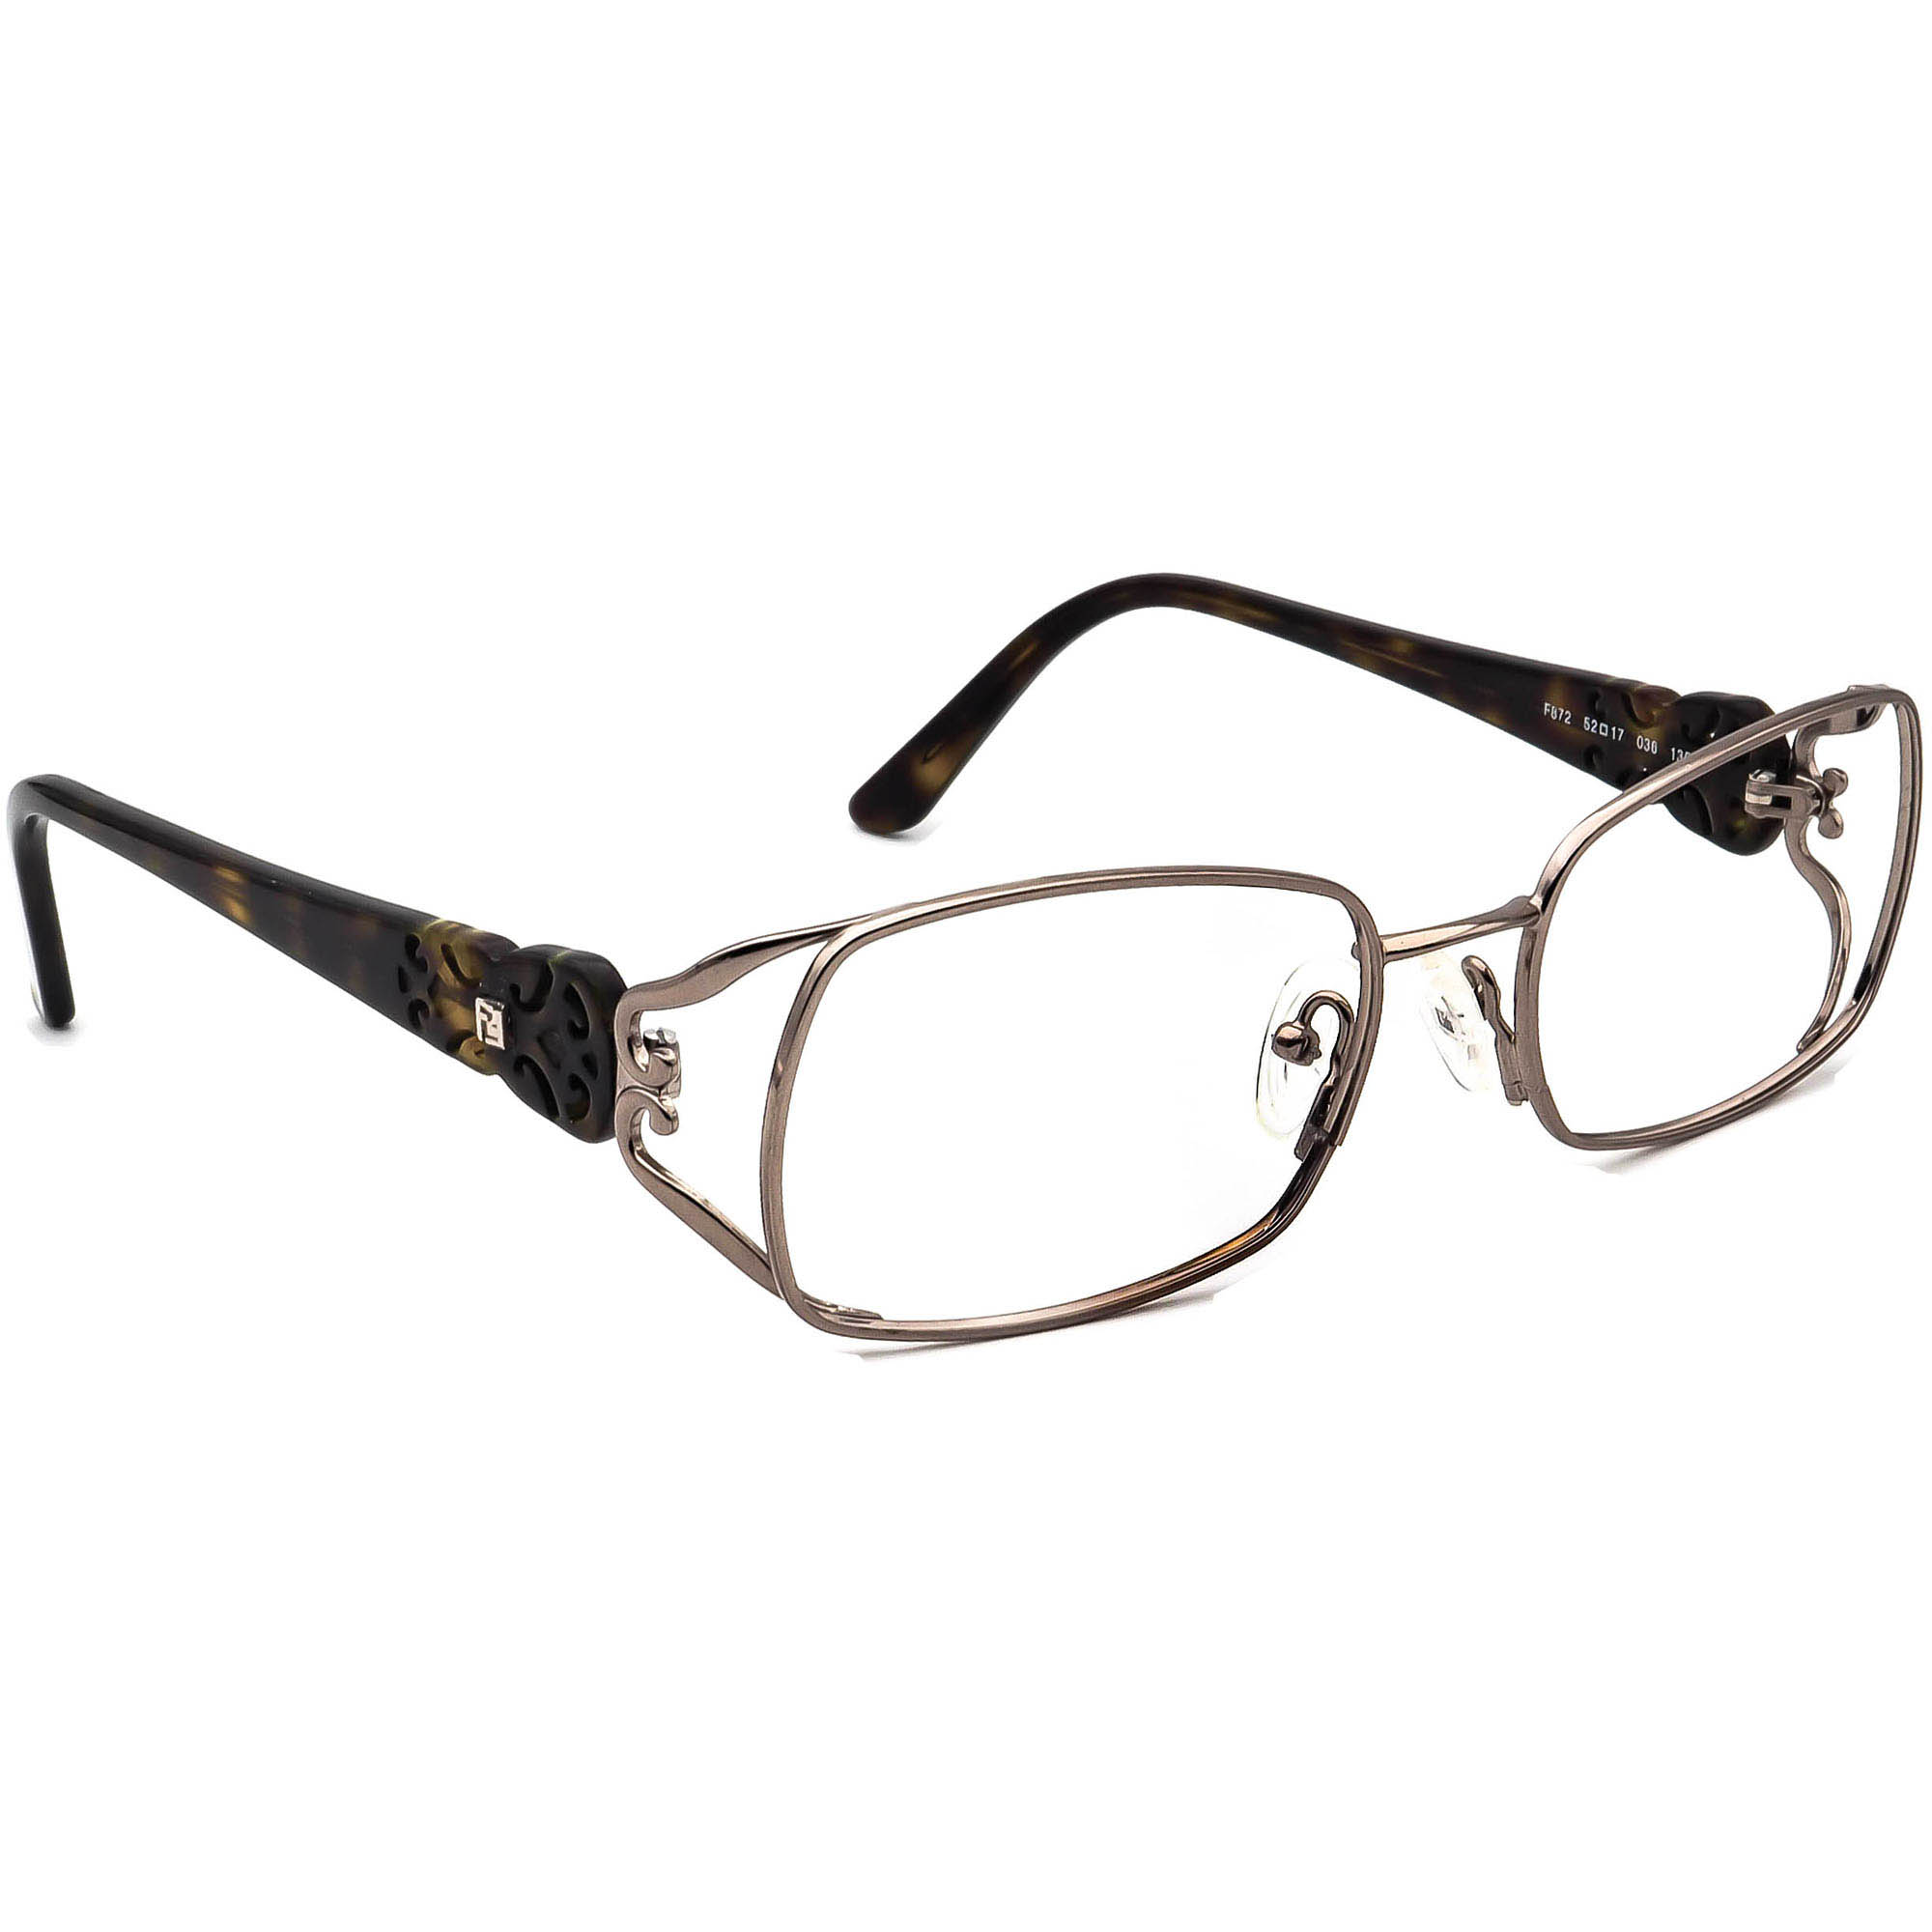 Fendi F872 036 Eyeglasses